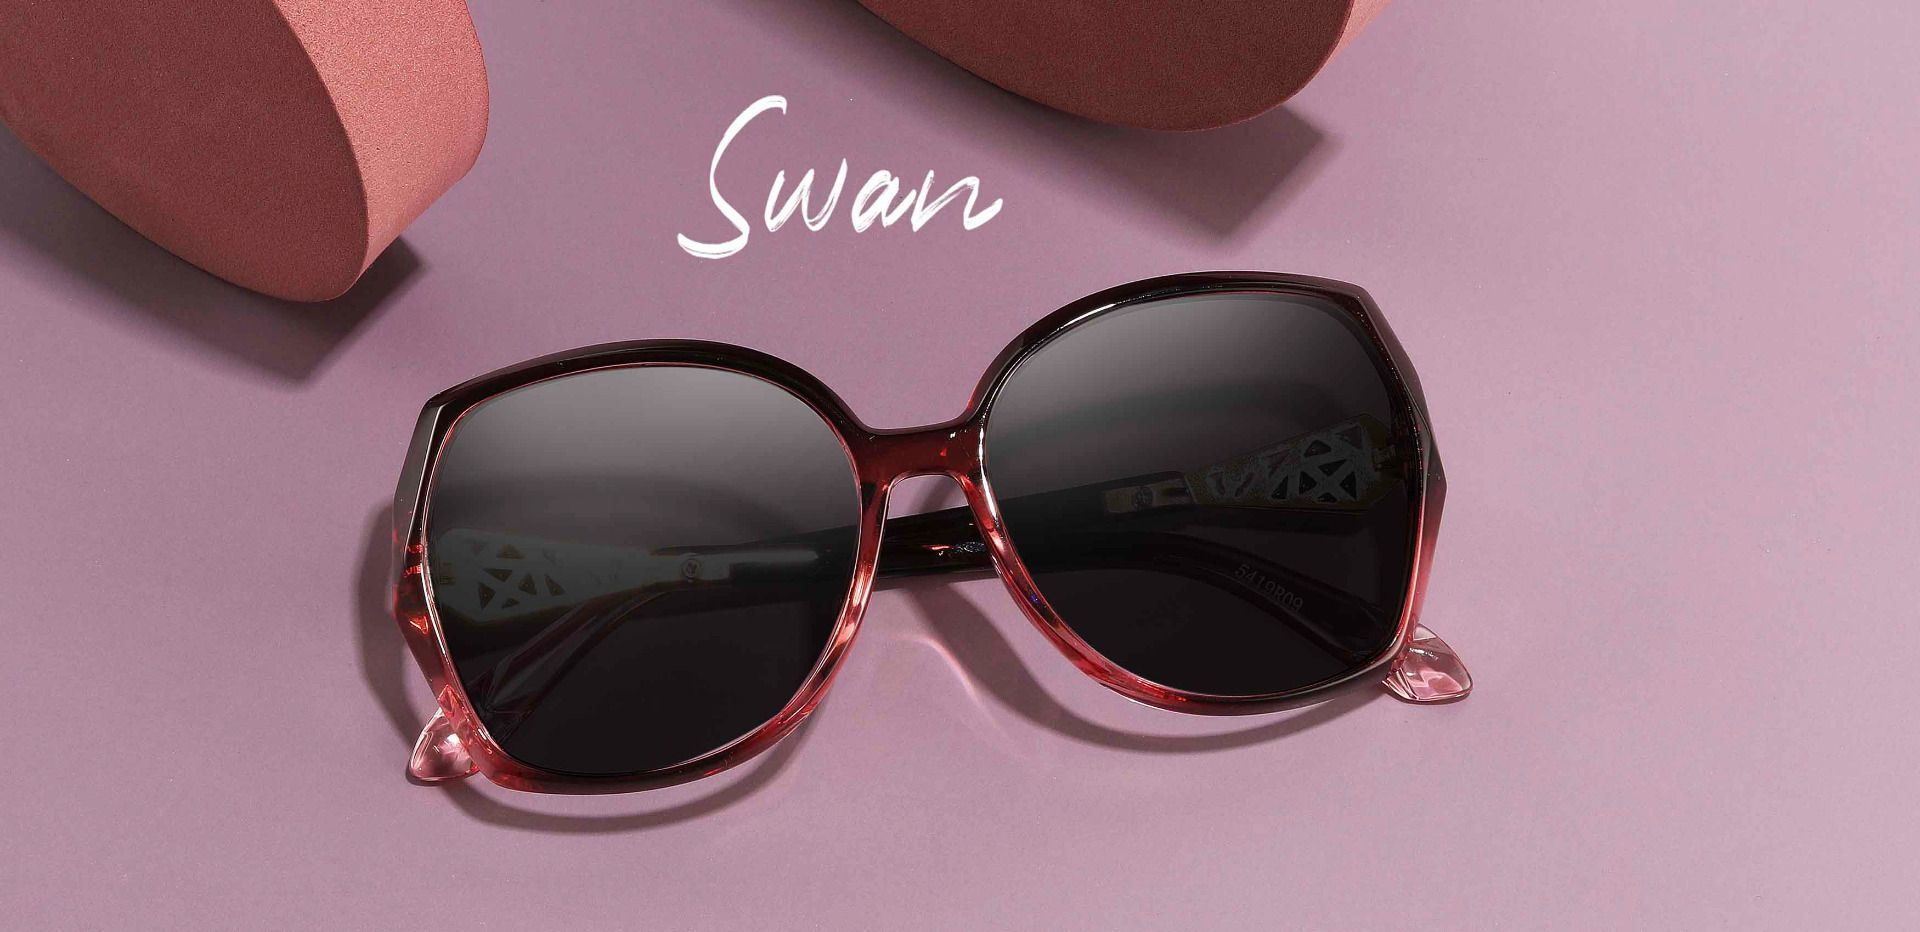 Swan Geometric Single Vision Sunglasses - Red Frame With Gray Lenses